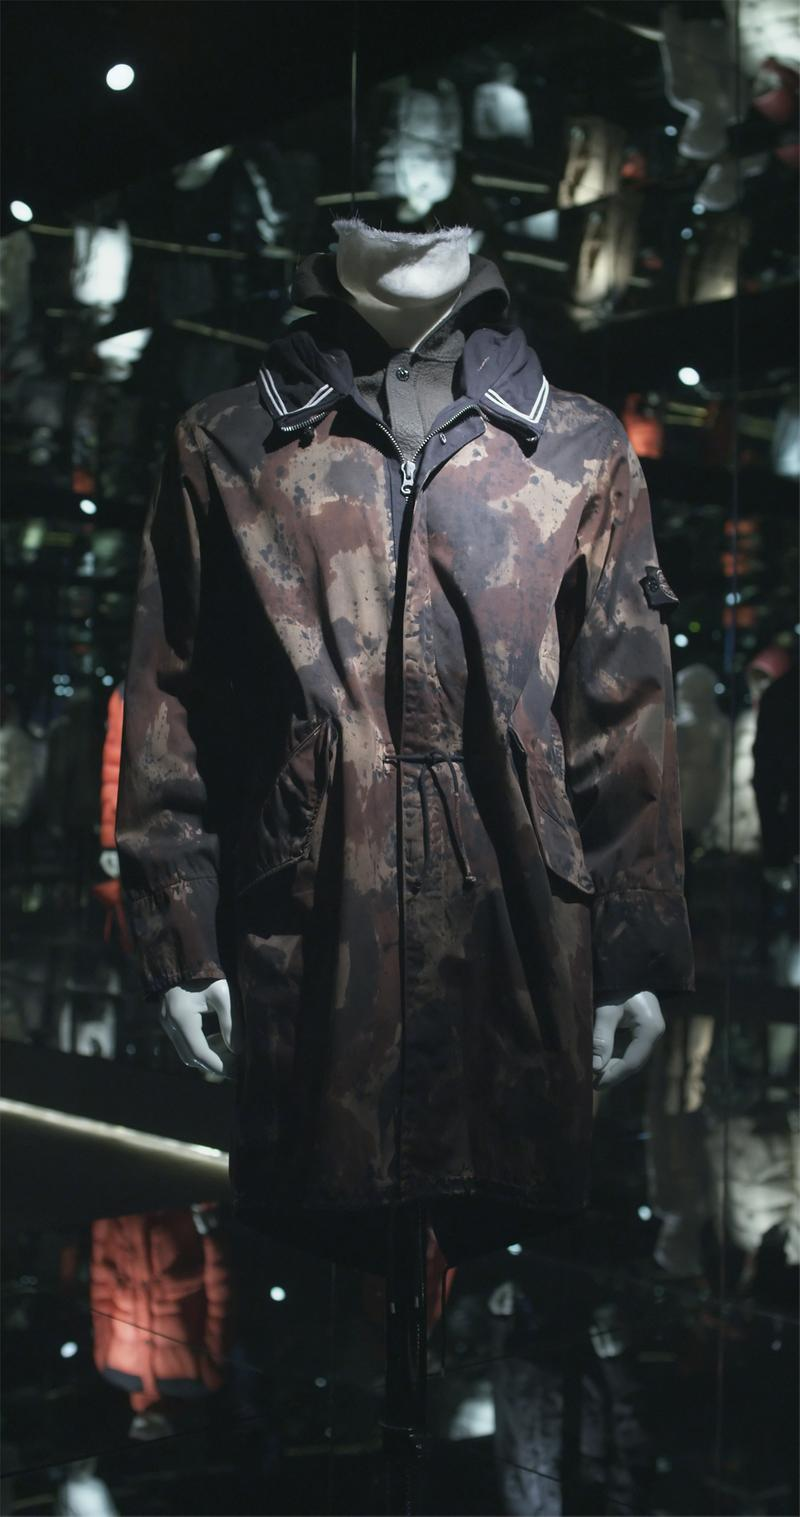 Zip up mid length camouflage print jacket with cinched waist, black collar with white stripes and side pockets displayed on mannequin bust